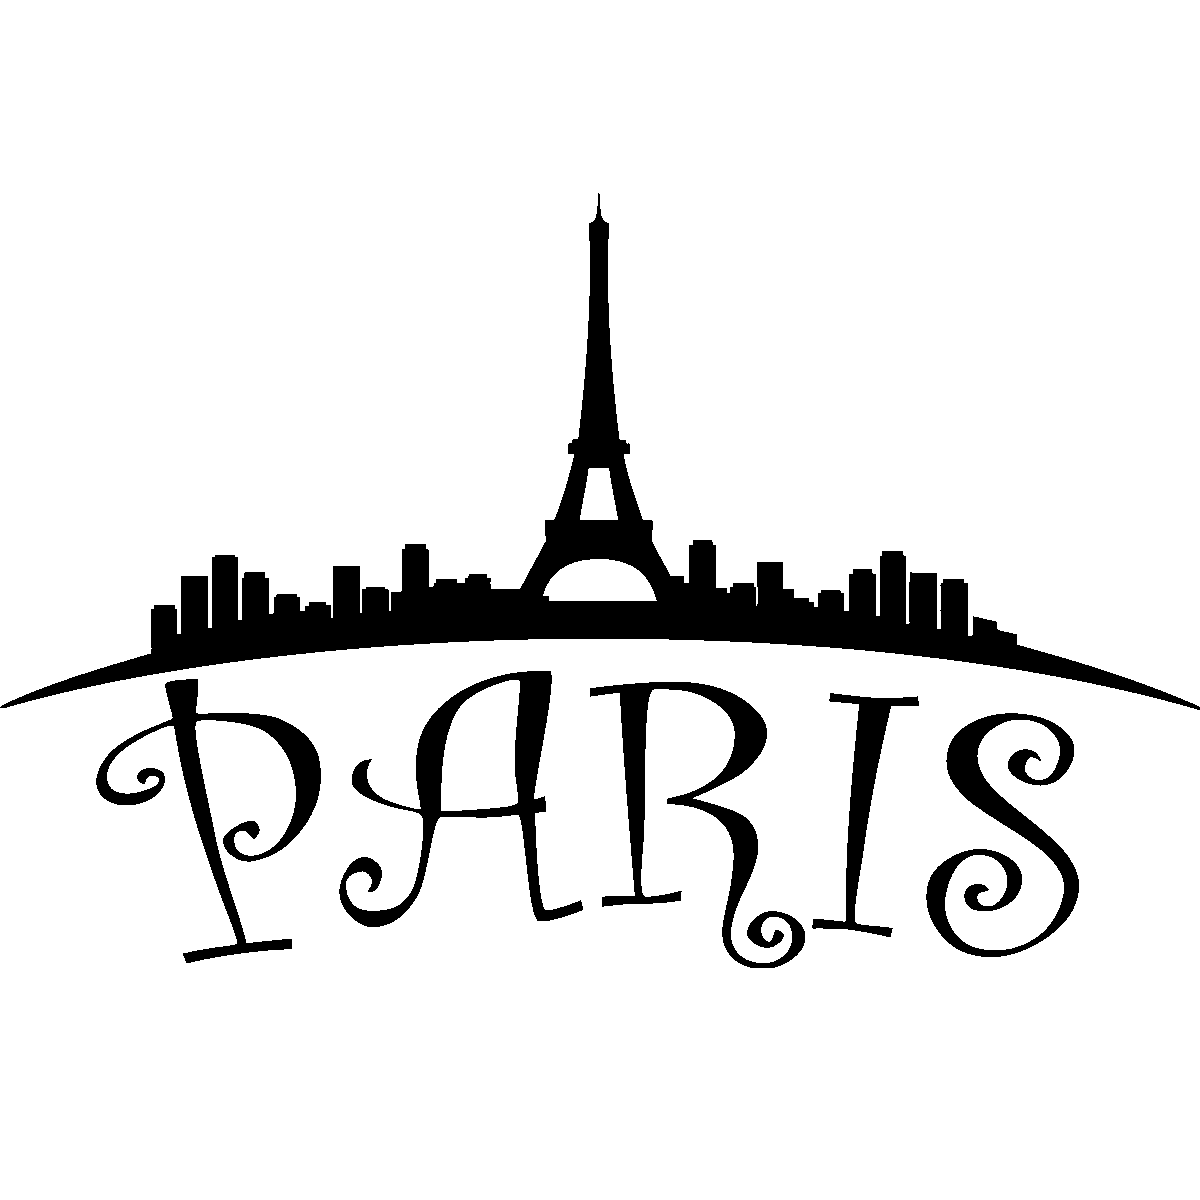 Stickers muraux paris sticker paris vu de loin ambiance - Stickers muraux paris ...